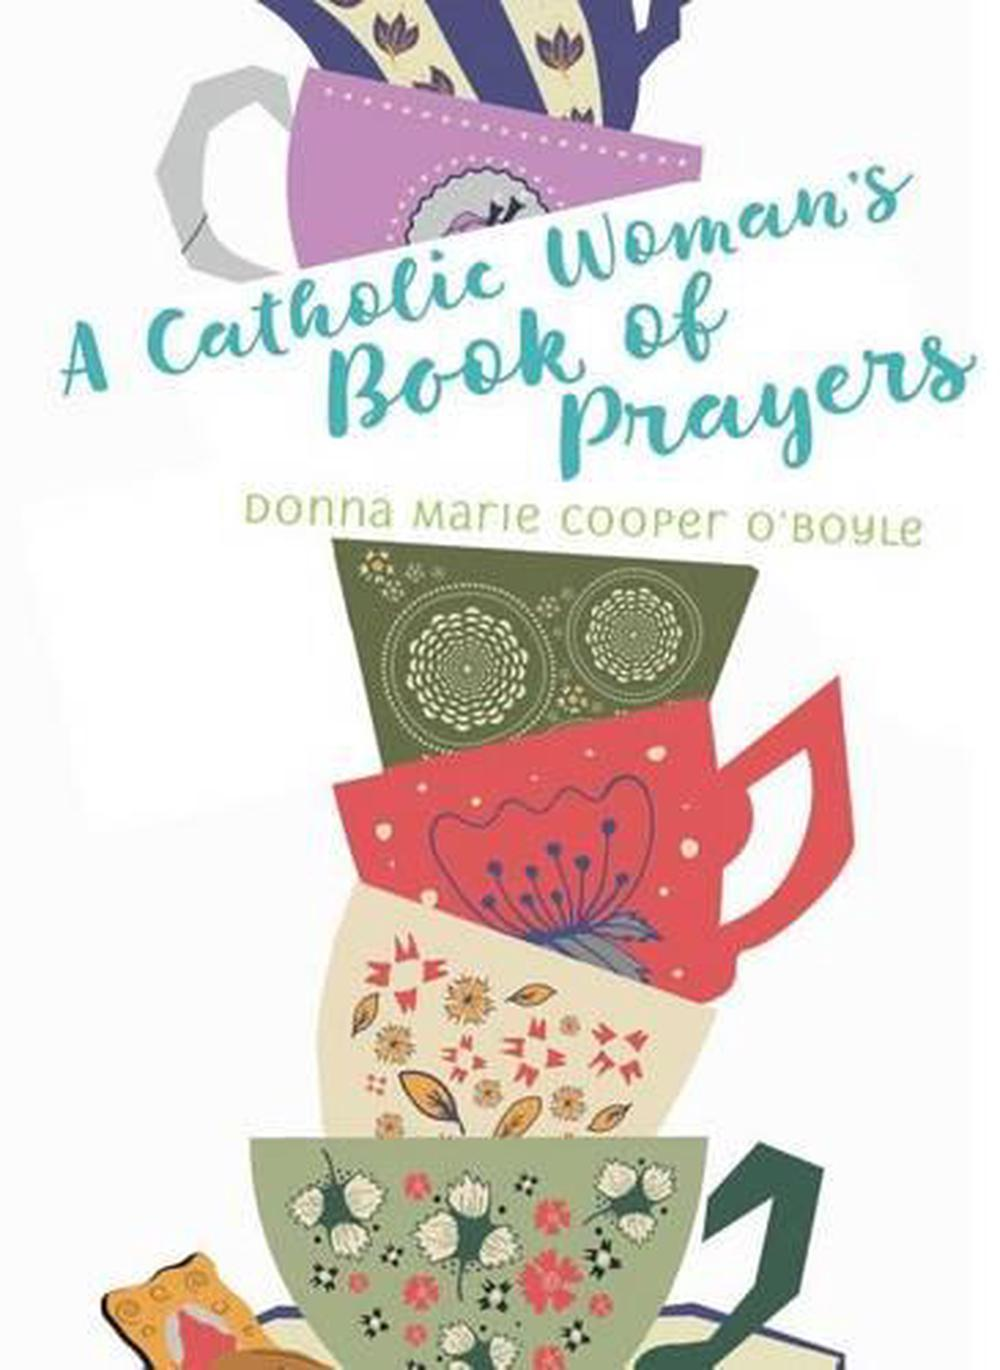 Words Of Encouragement After Miscarriage: A Catholic Woman's Book Of Prayers By Donna-Marie Cooper O